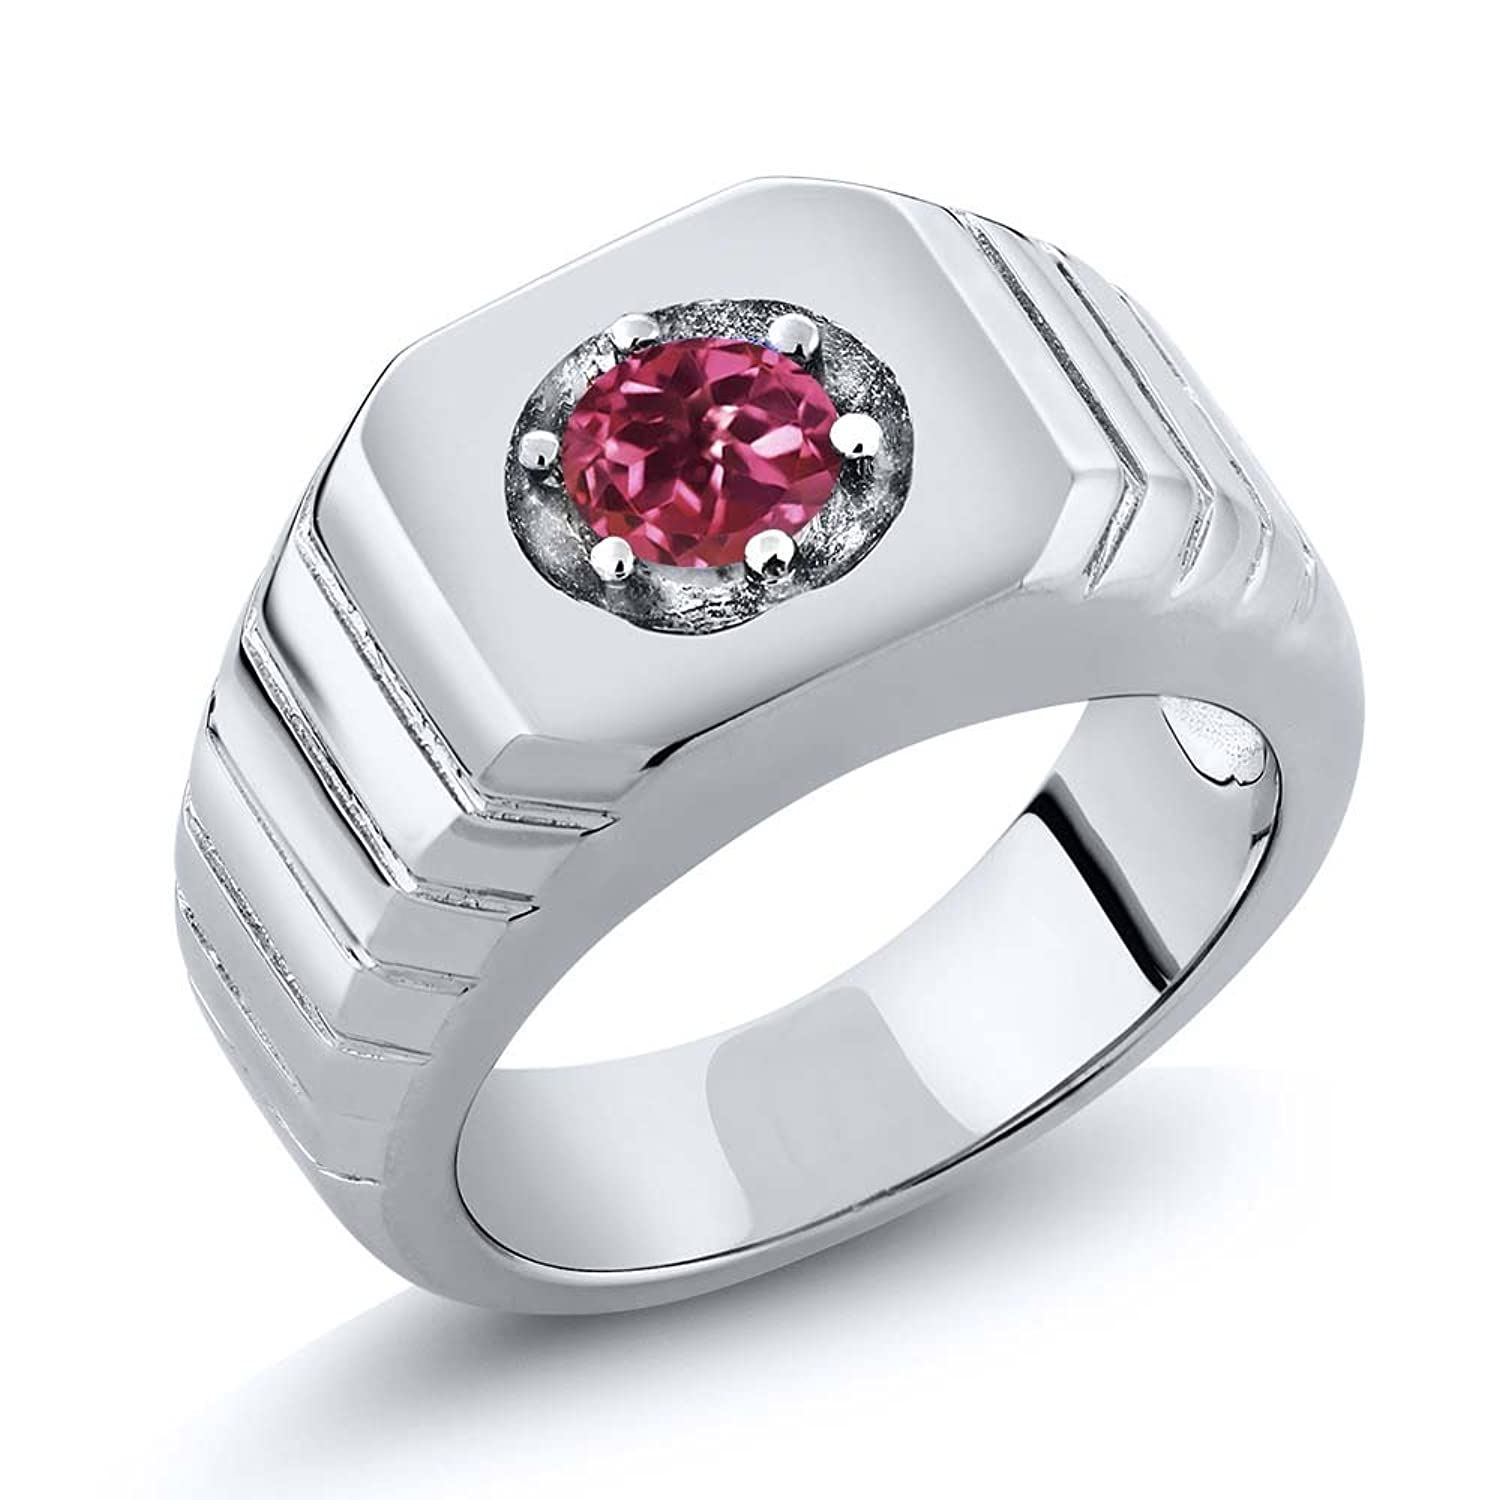 0.50 Ct Round Pink AAA Tourmaline AAA 925 Sterling Silver Men's Solitaire Ring